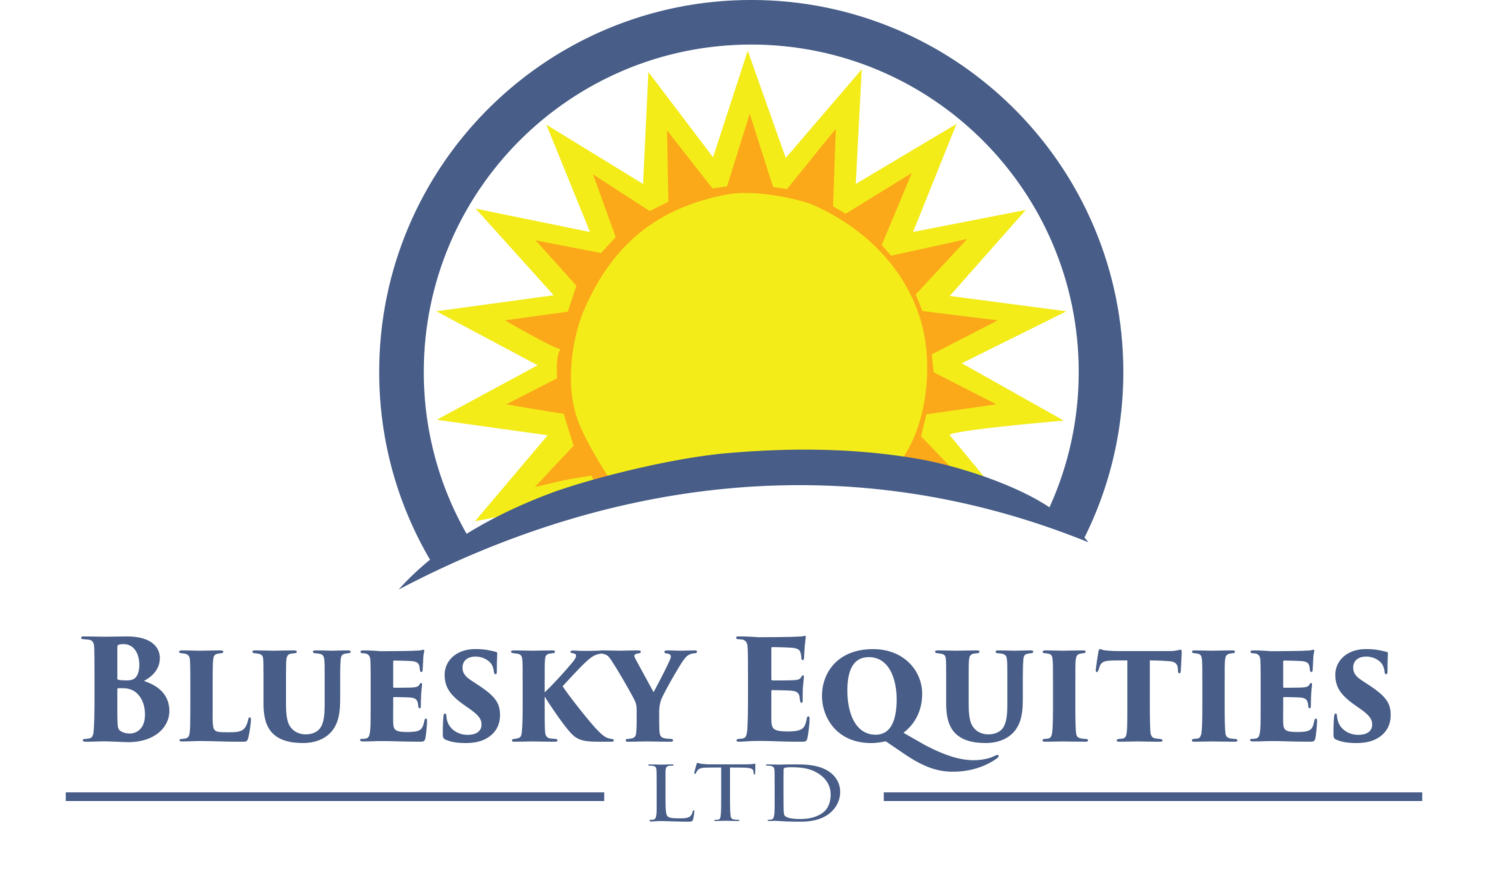 Bluesky Equities